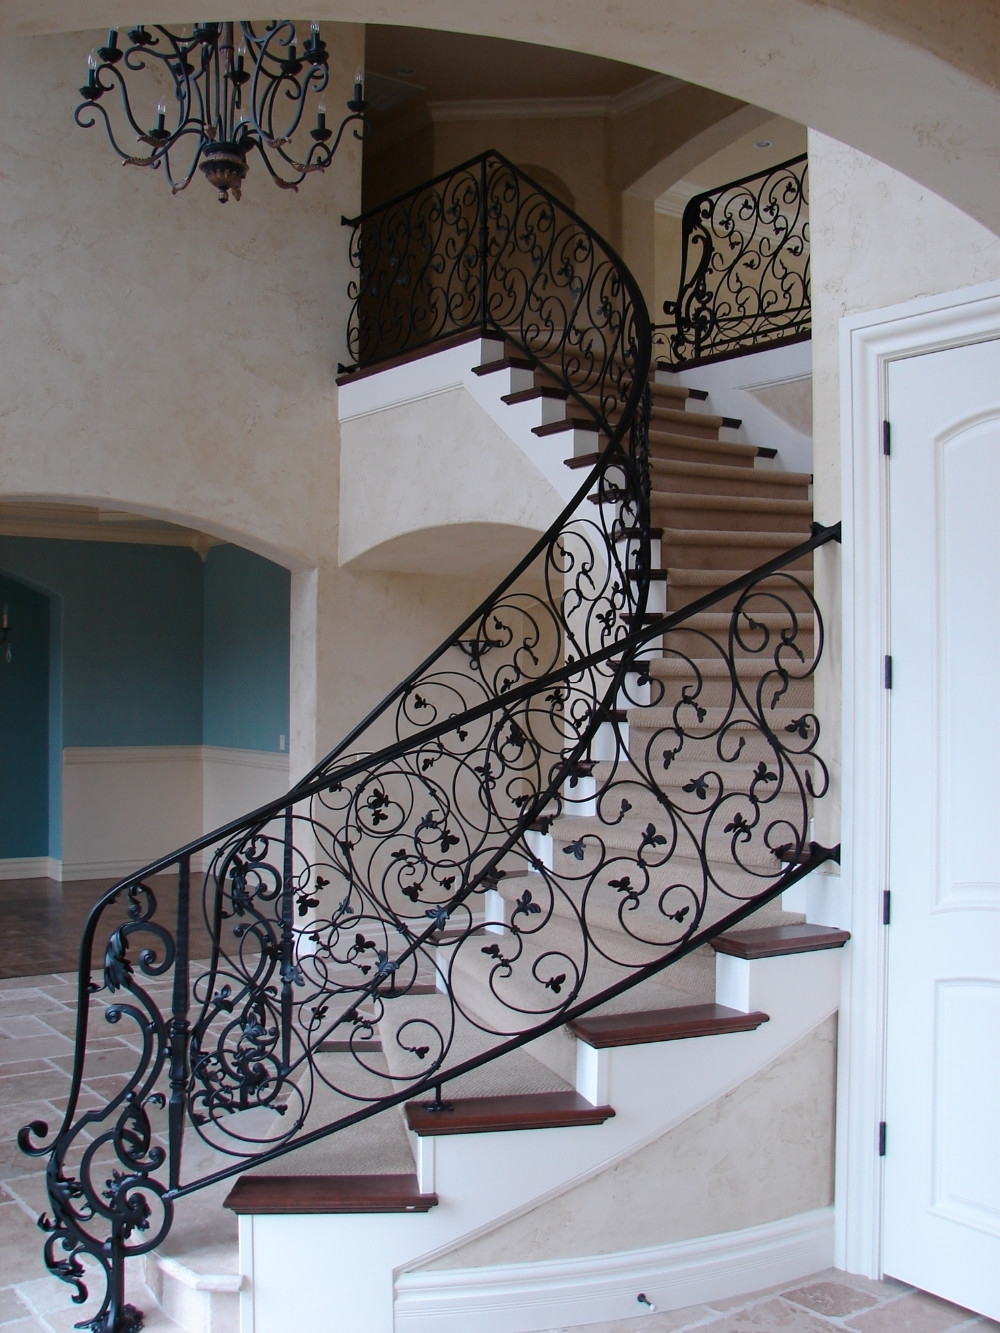 Stair Fittings Wrought Iron Railing Spindles Stair | Stair Banisters For Sale